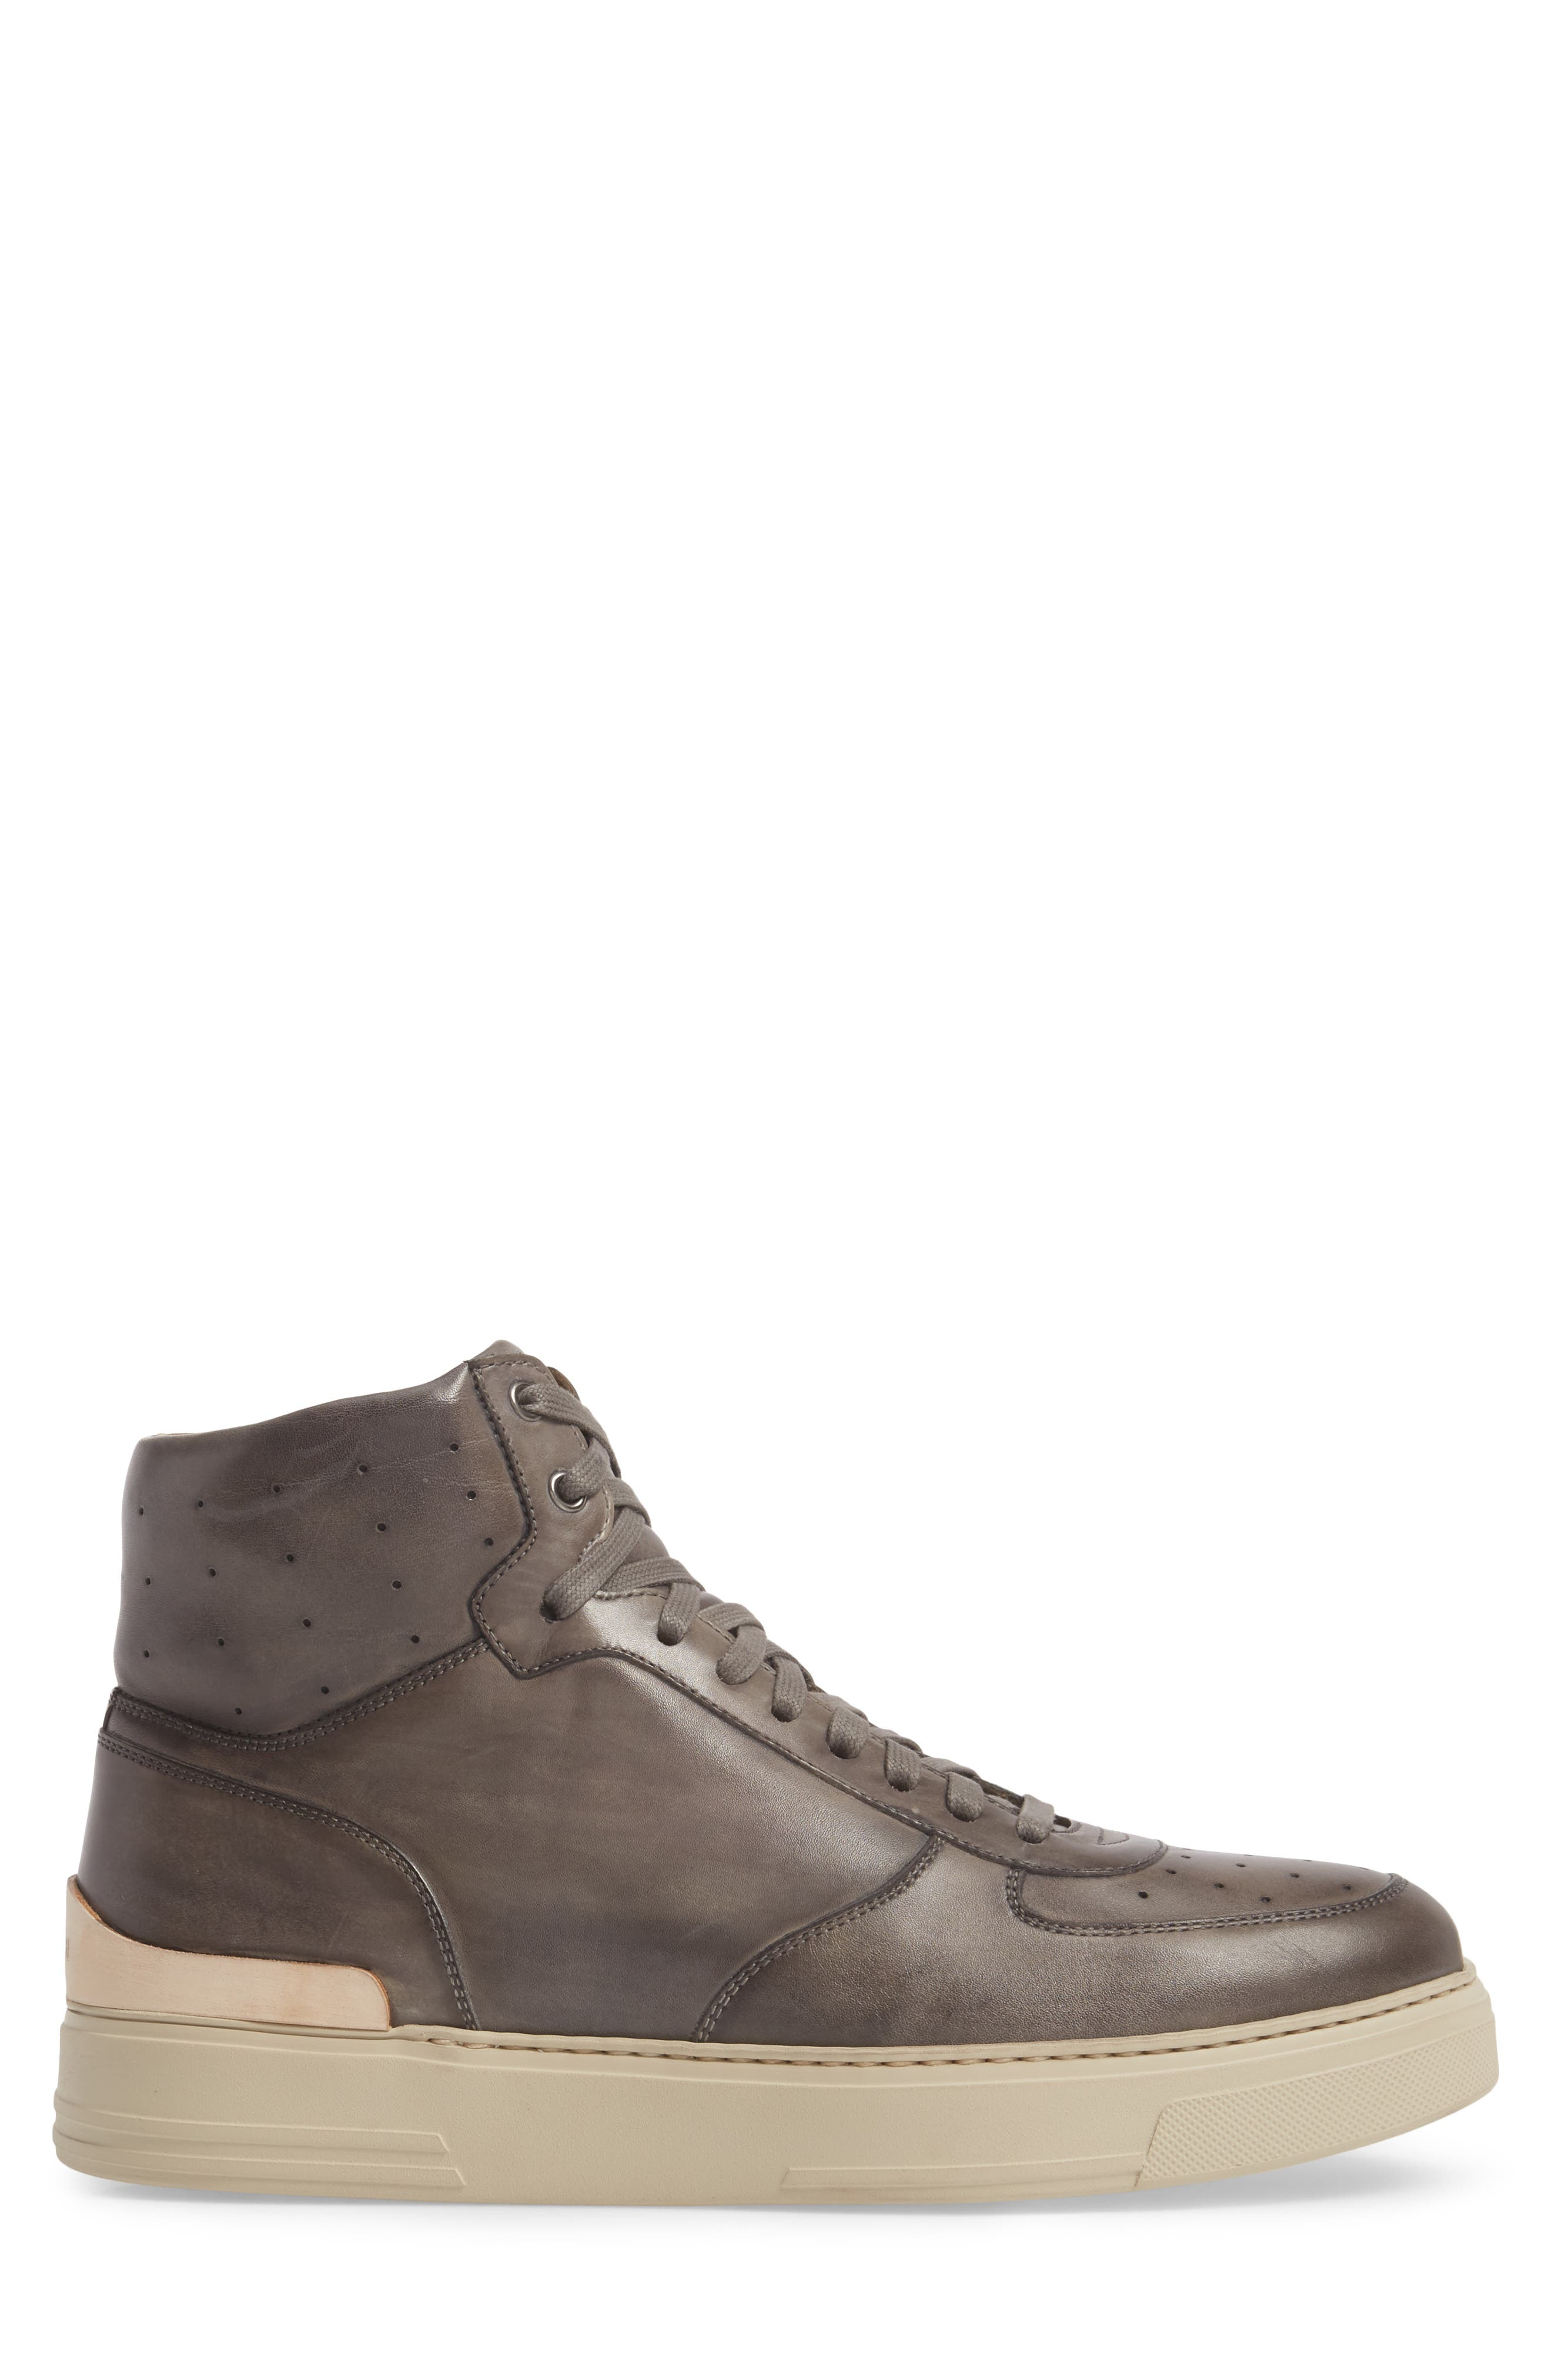 Varro Hi Top Lace Up Sneaker,                             Alternate thumbnail 3, color,                             Grey/ Grey Leather